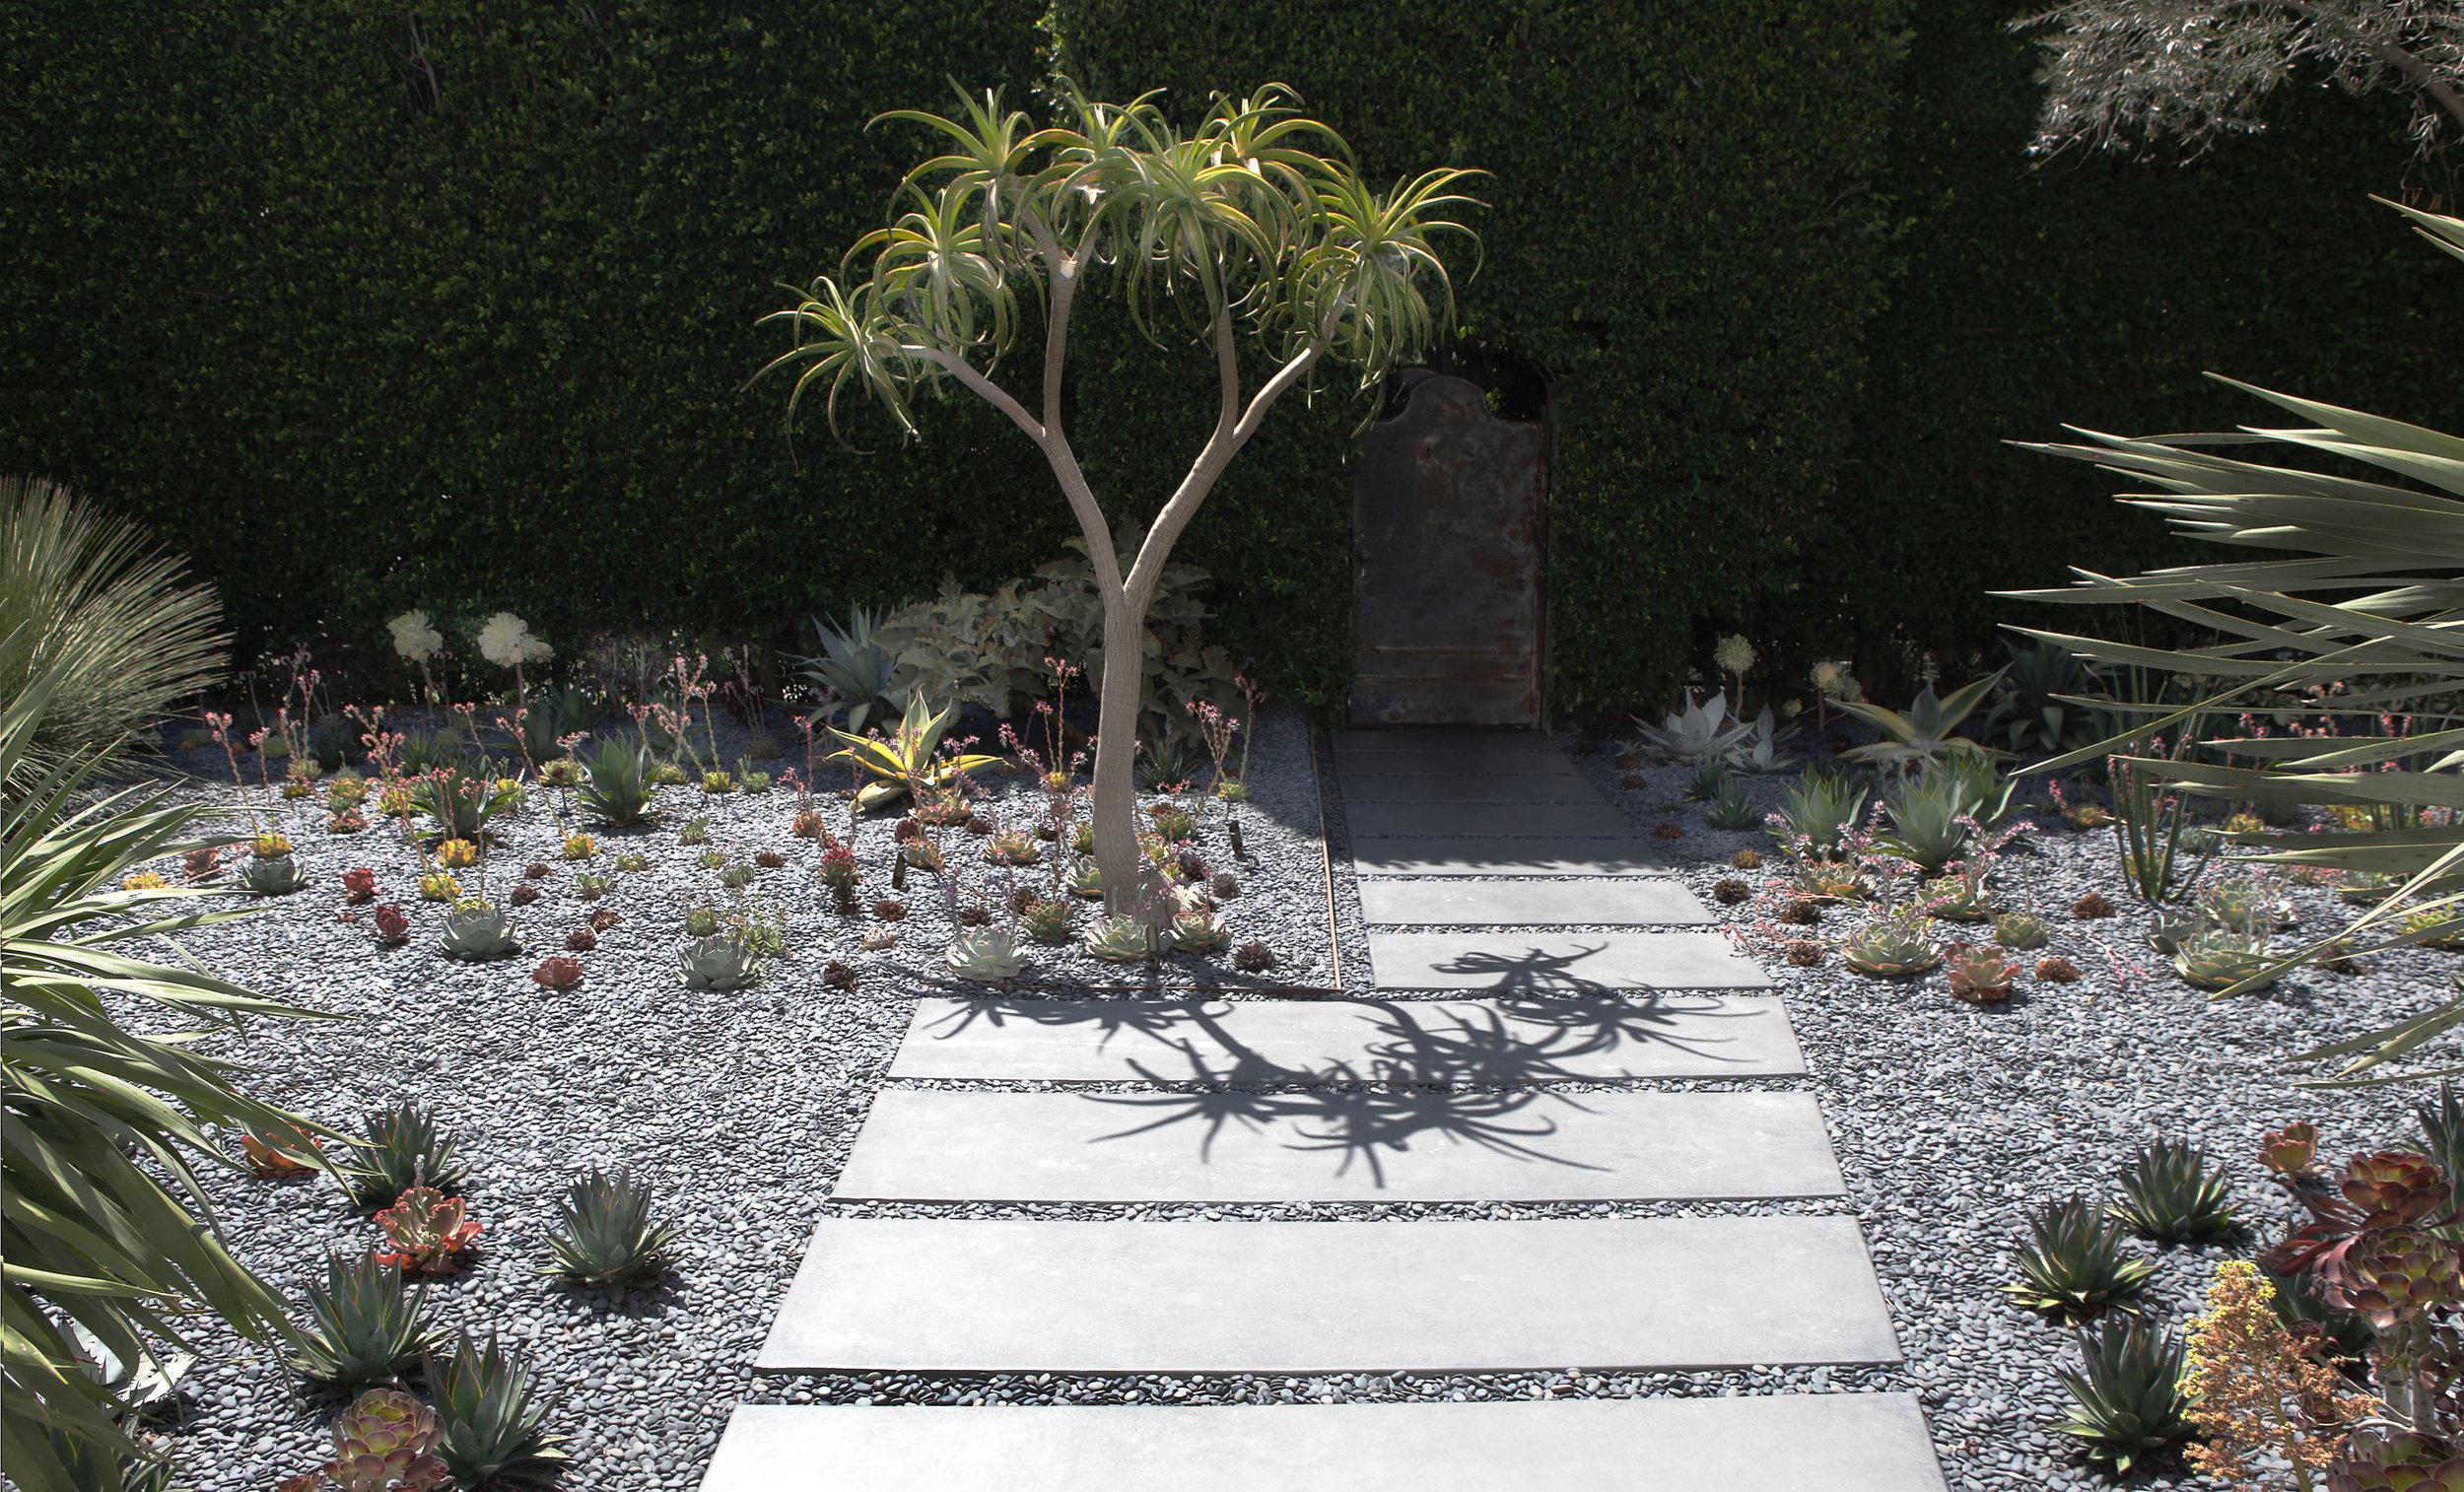 aloe bainesii succulent tree walled garden   - Drought tolerant moroccan inspired xeriscape West Hollywood walled garden hedge house - Los Angeles garden design by Campion Walker Landscapes